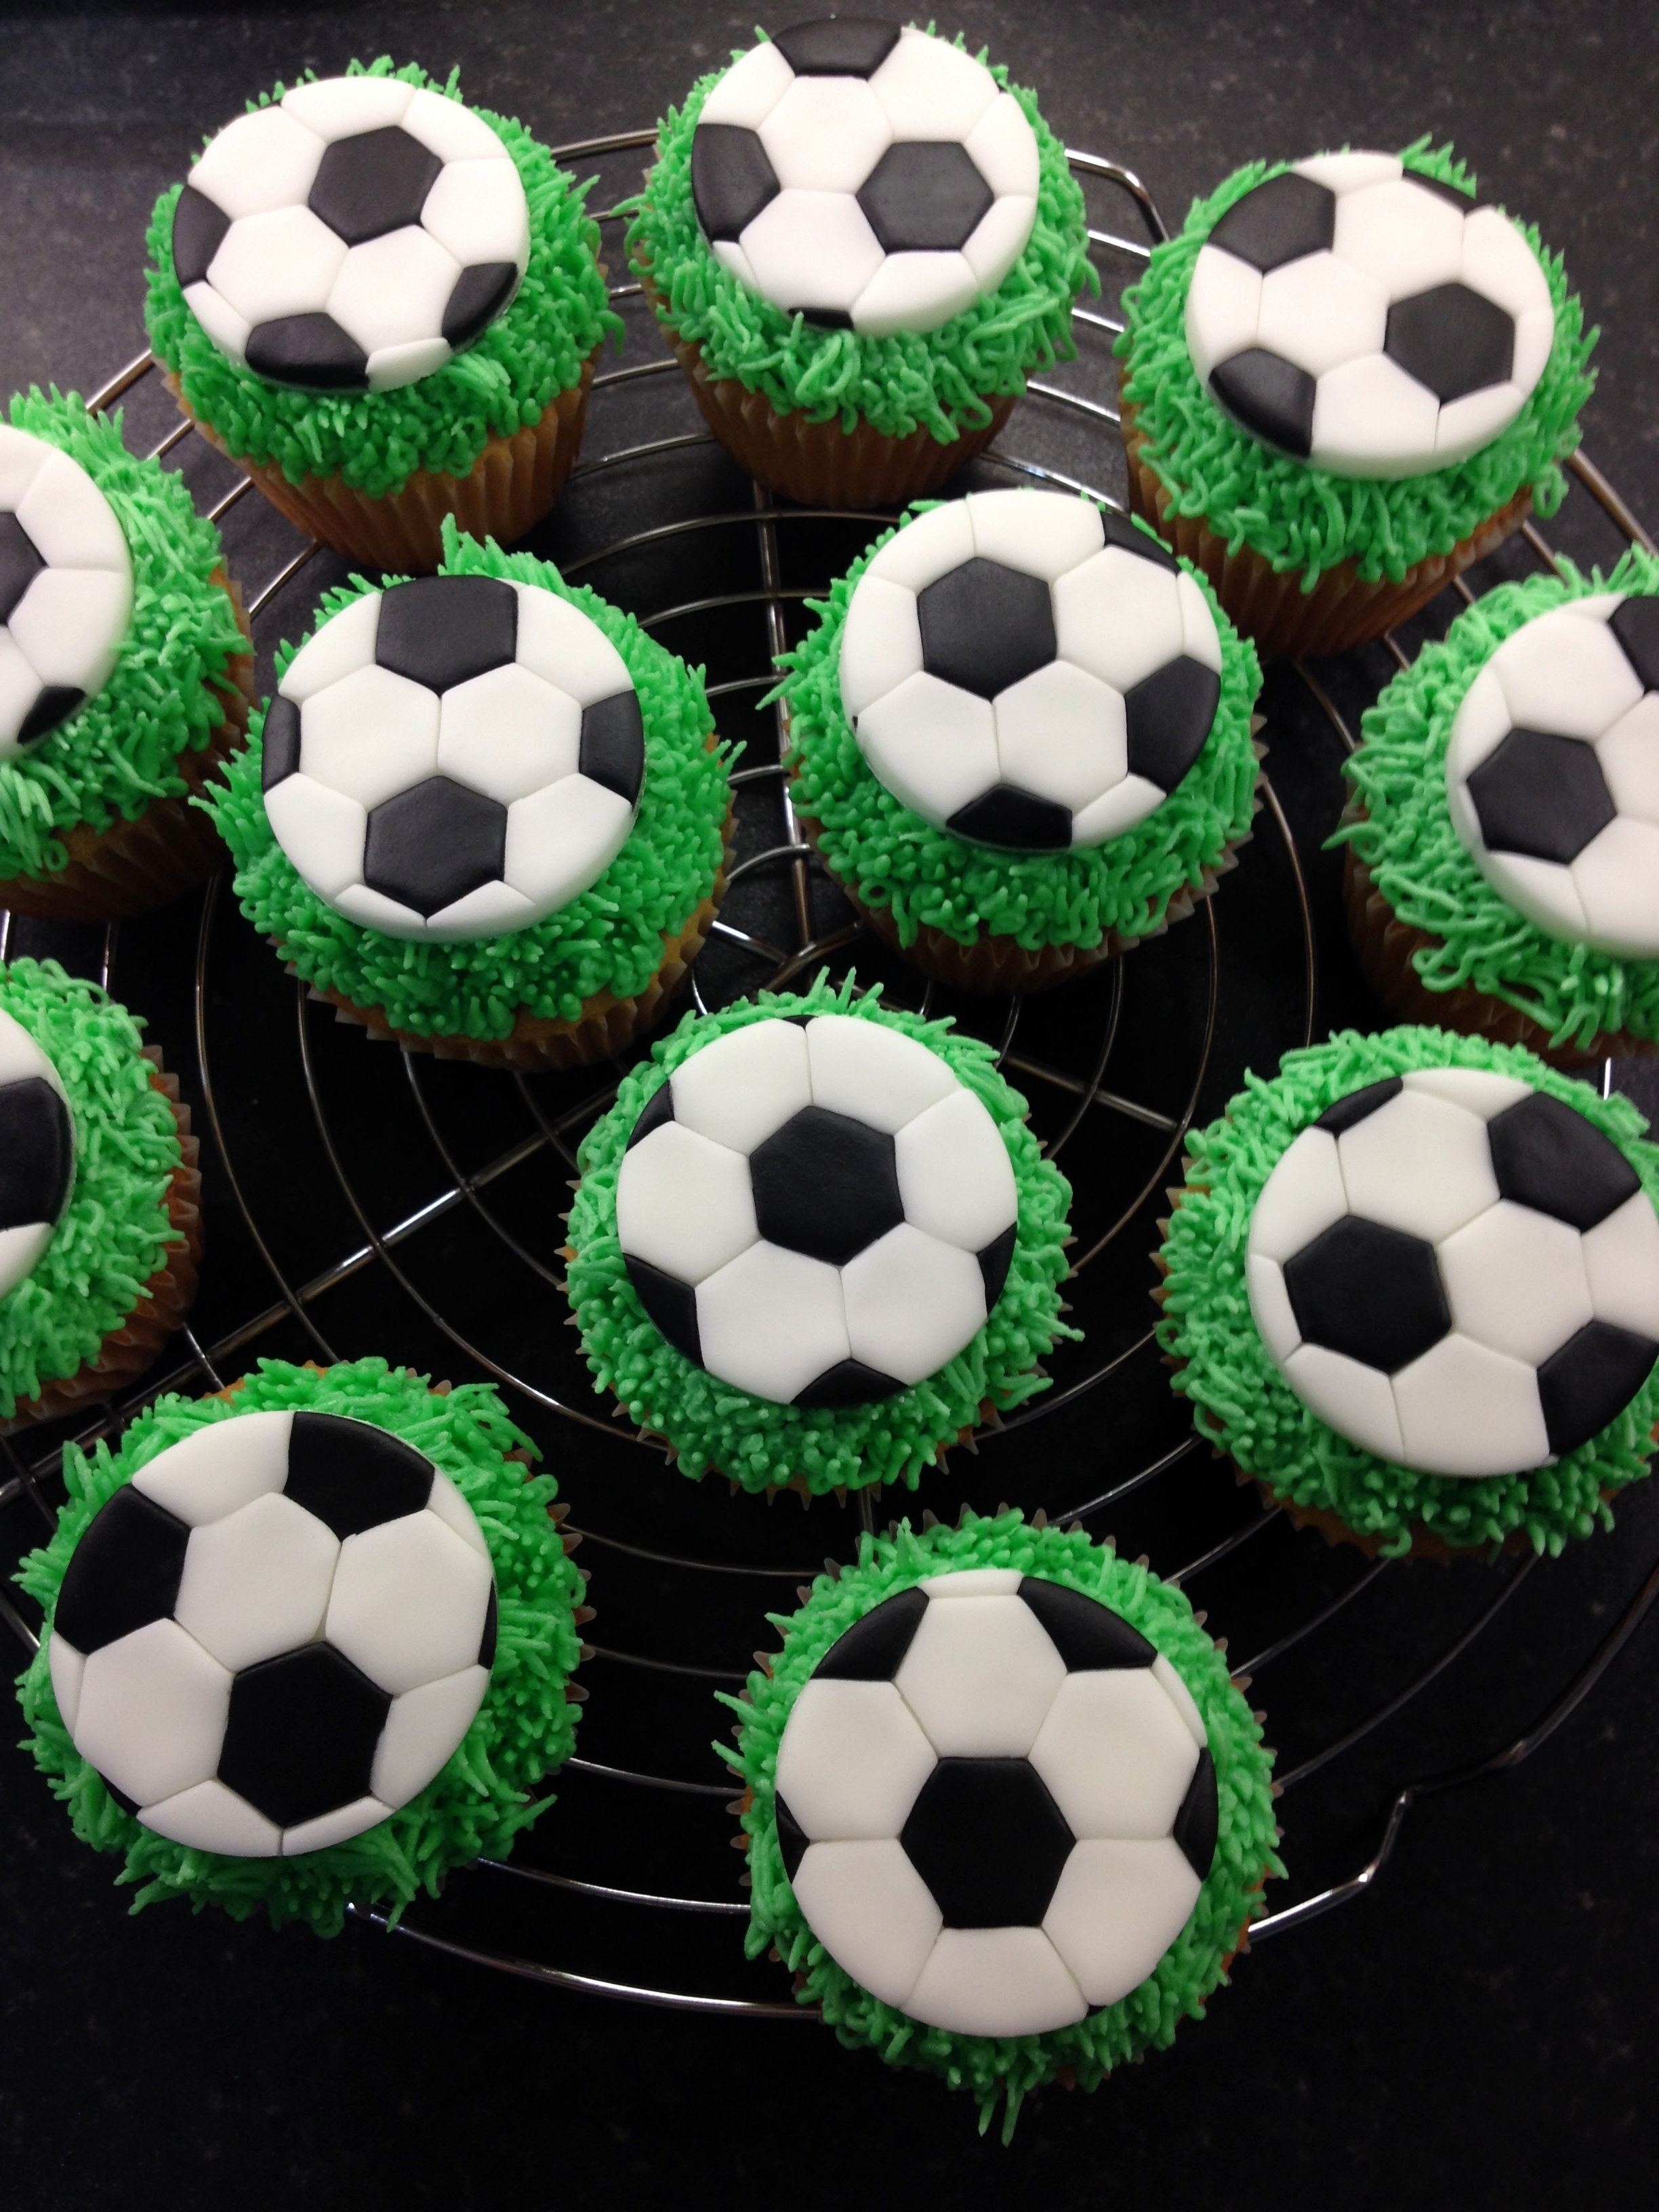 Fondant Sugar Paste Football Cupcake Toppers With Piped Green Grass Very Good How To Tutorial Football Soccer Cupcakes Can Be A Challeng